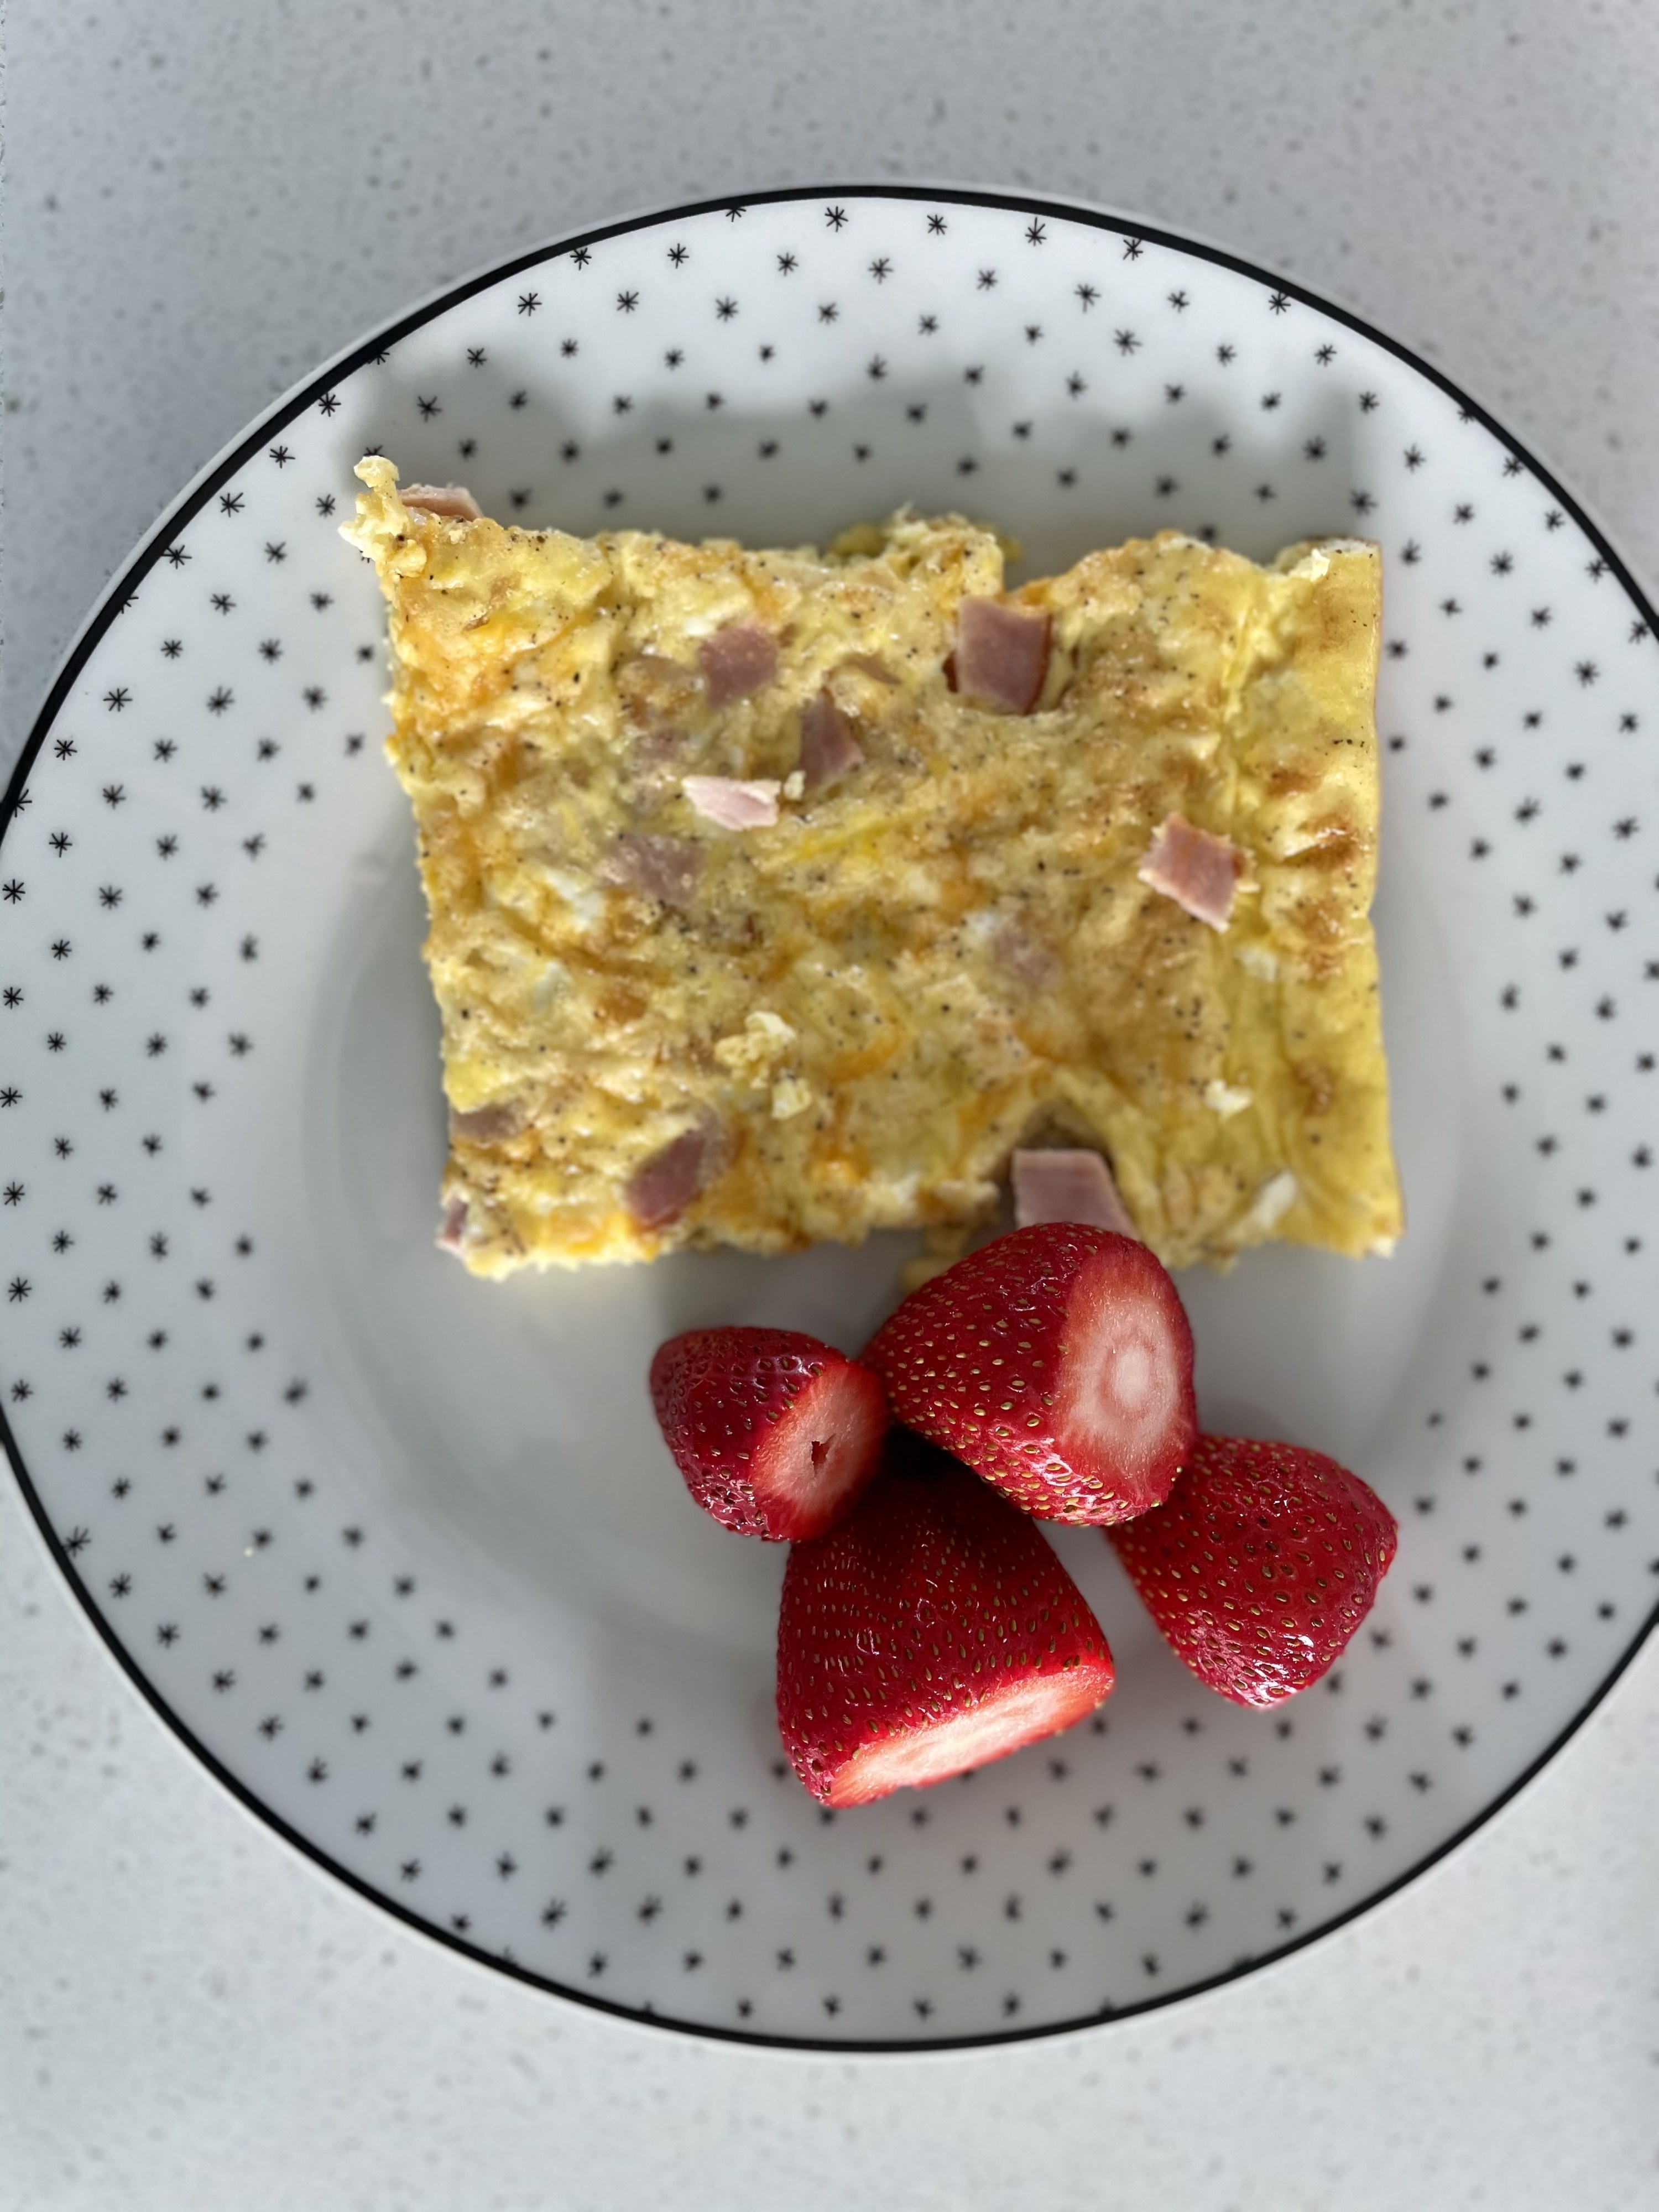 Sheet pan eggs plated with strawberries